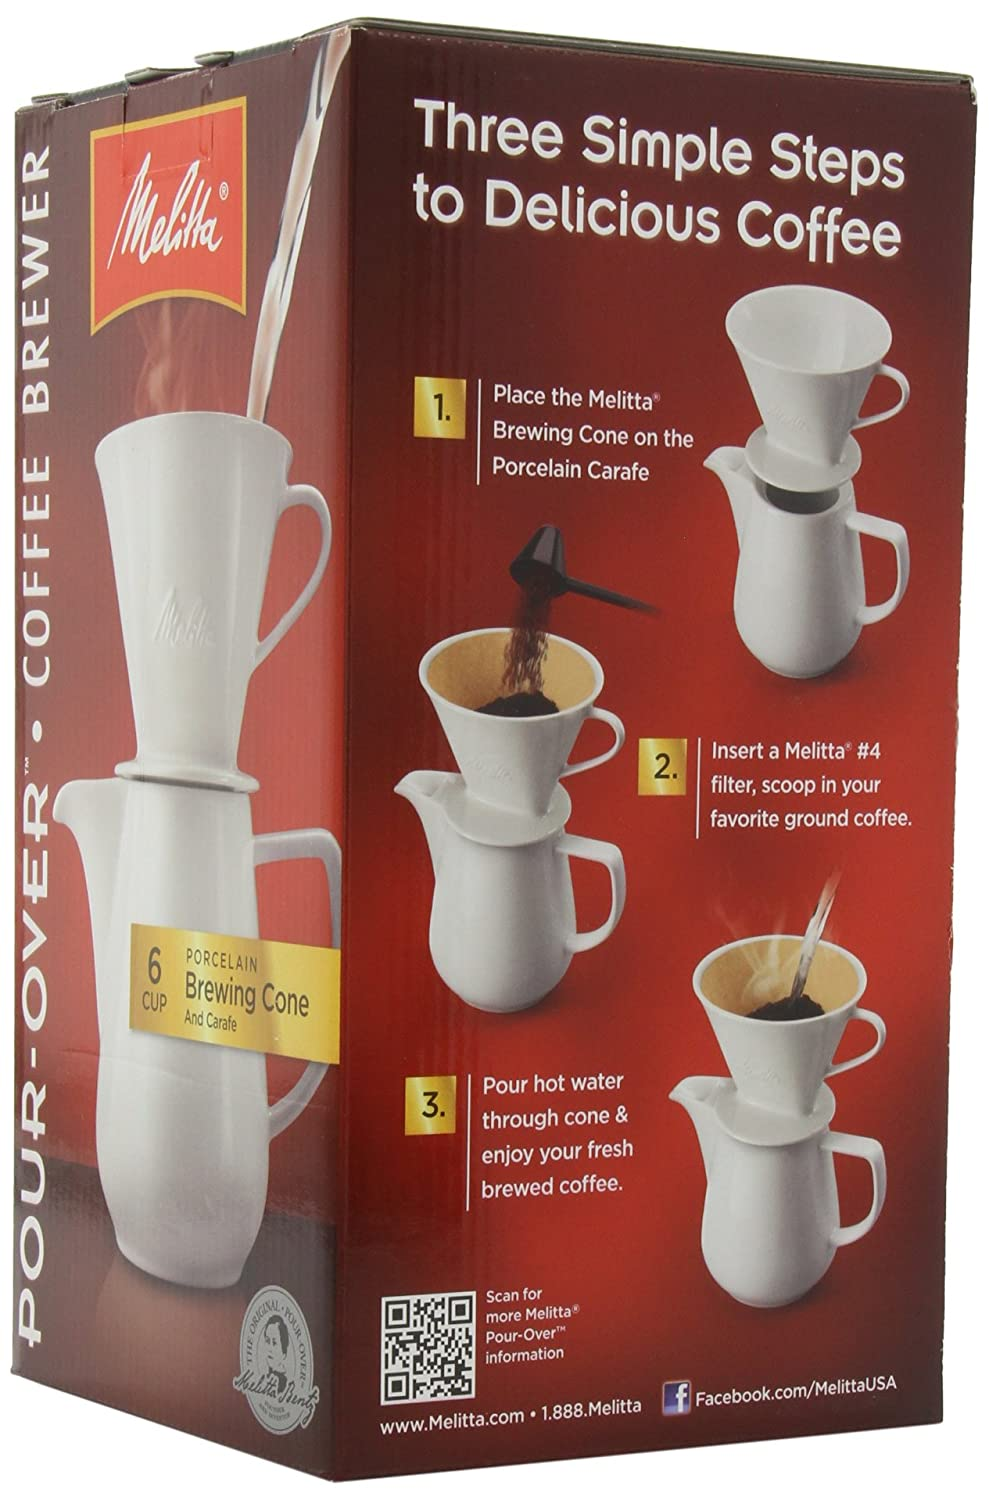 Drip coffee maker - choice of lazy gourmets